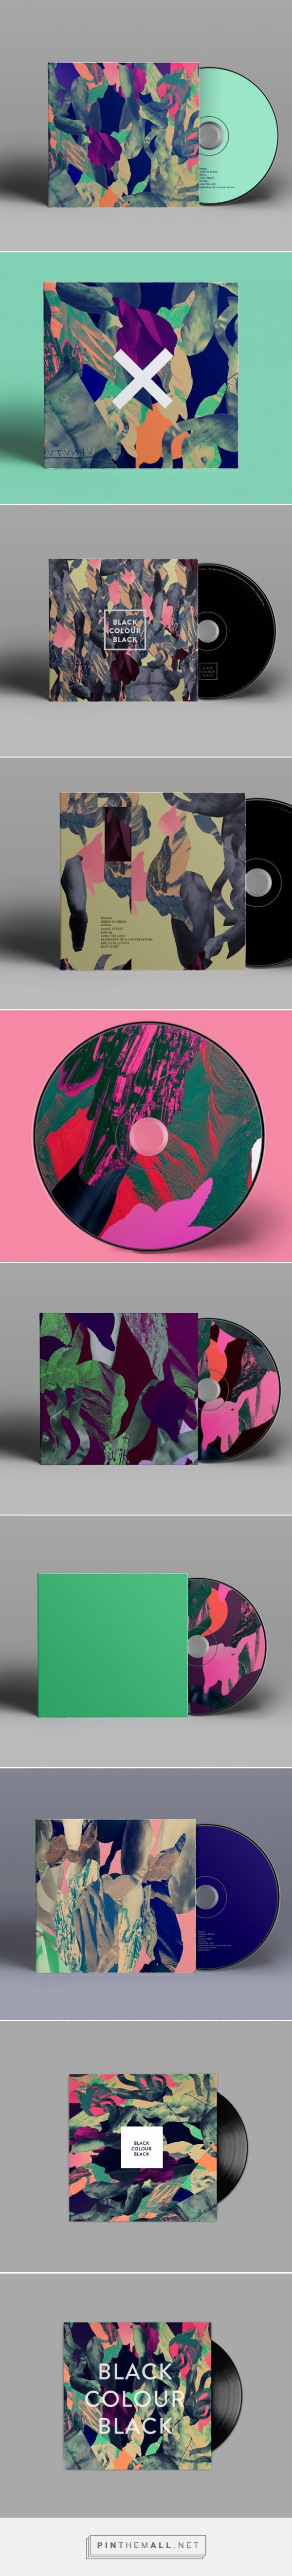 Make me some music | Colorful collages for music packaging | Designed by Anna Katrin Karlsson